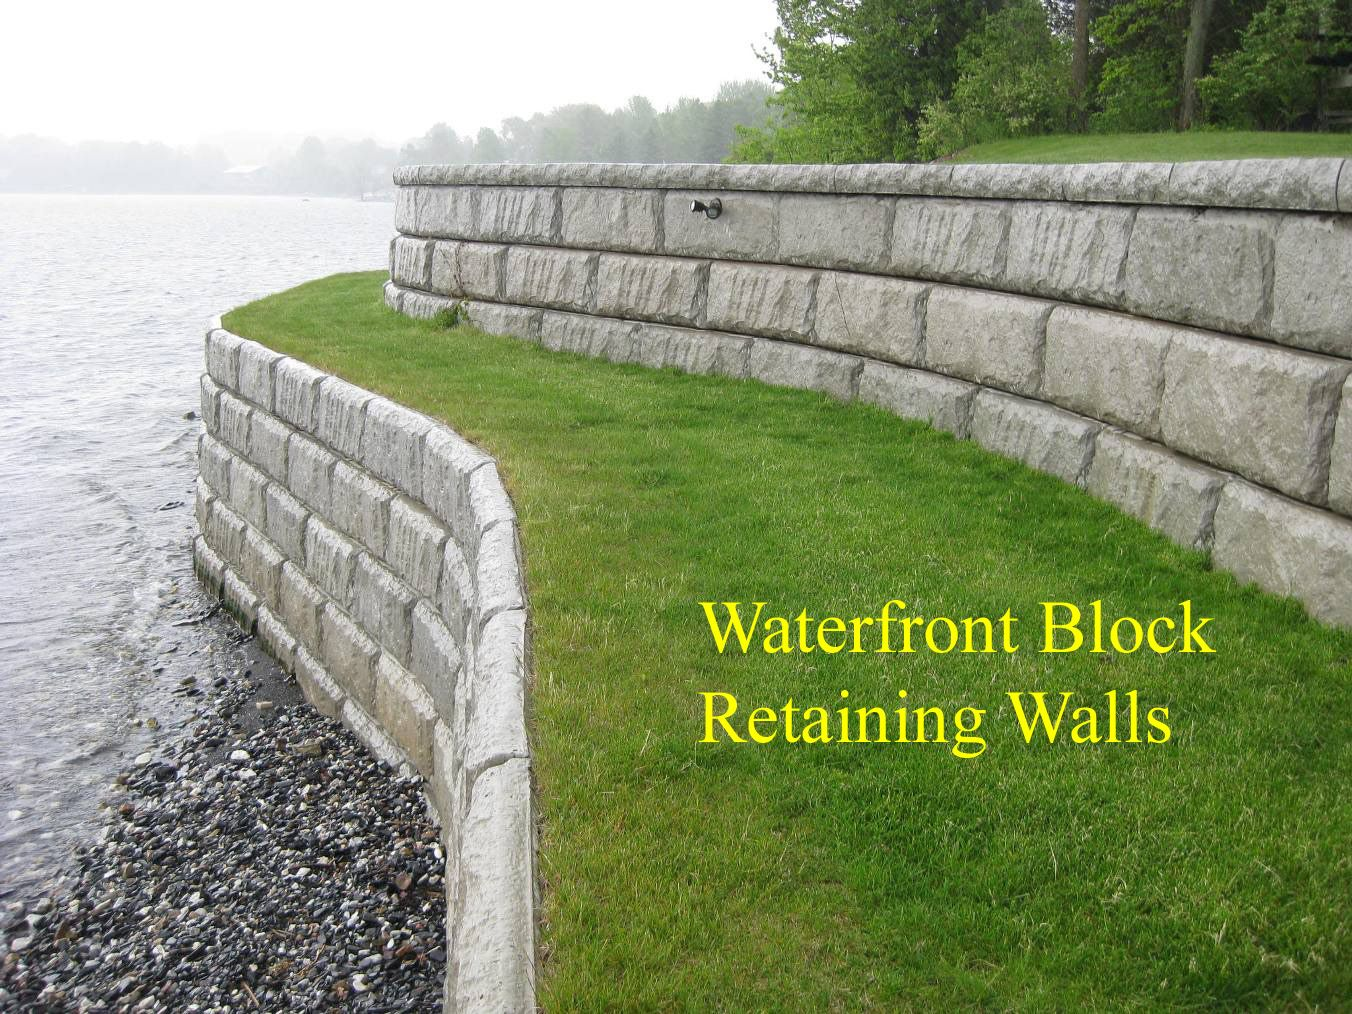 Lake Sea Walls Retaining Waterfront Marine Construction Eci Engineers